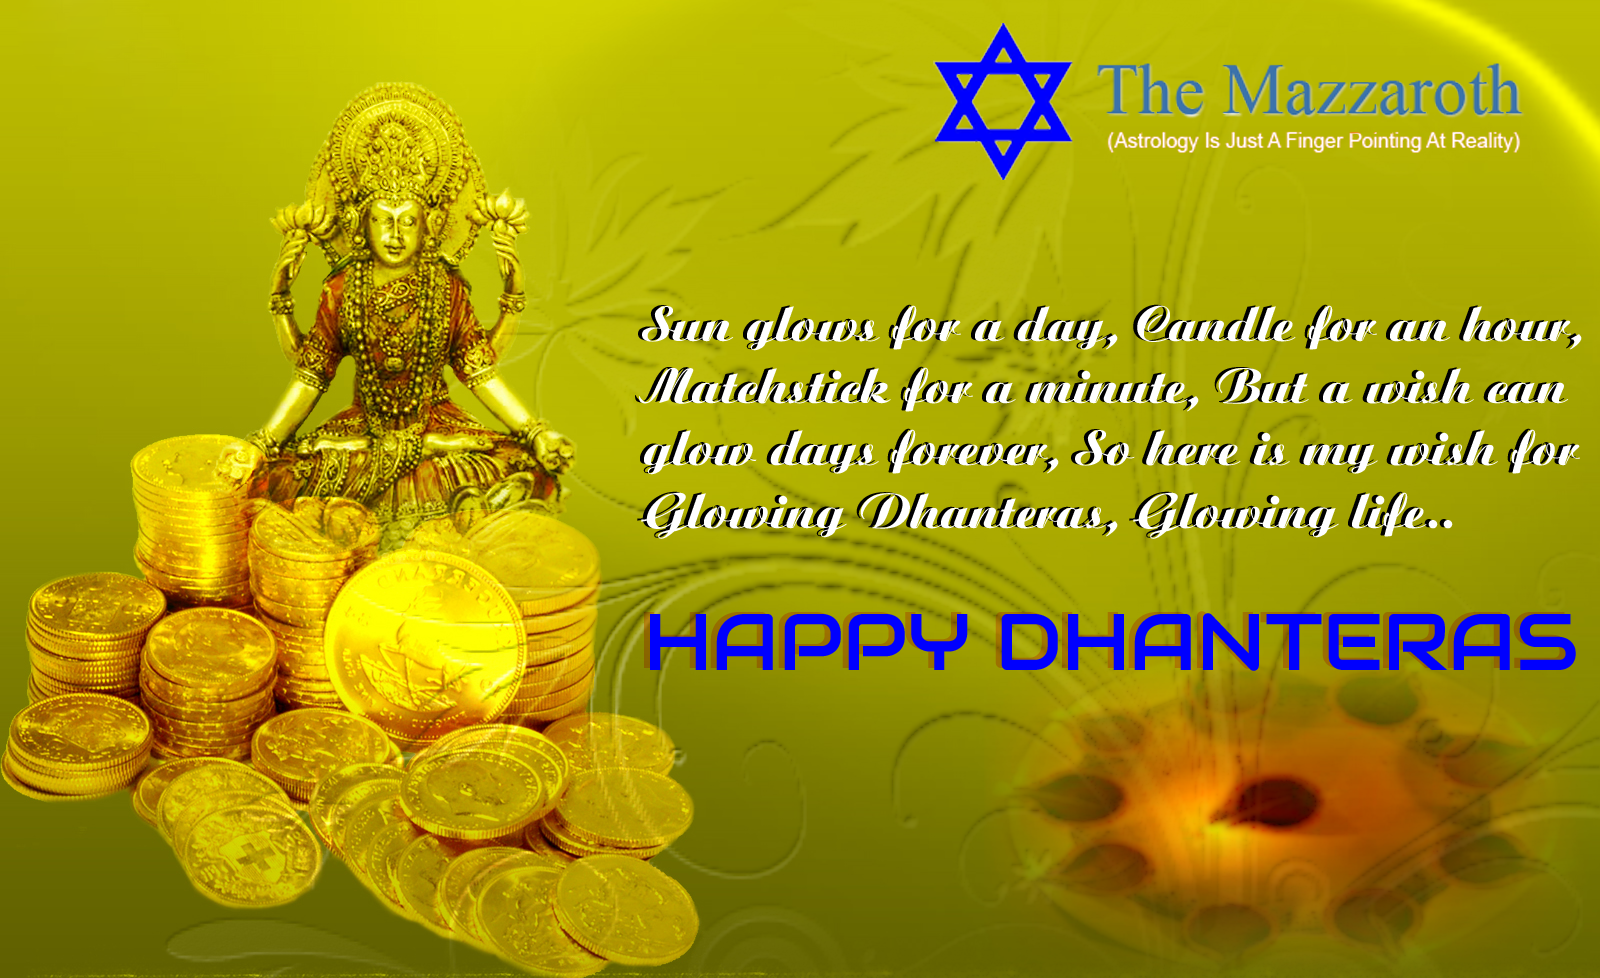 May Goddess Lakshmi bless you with good health & wealth on